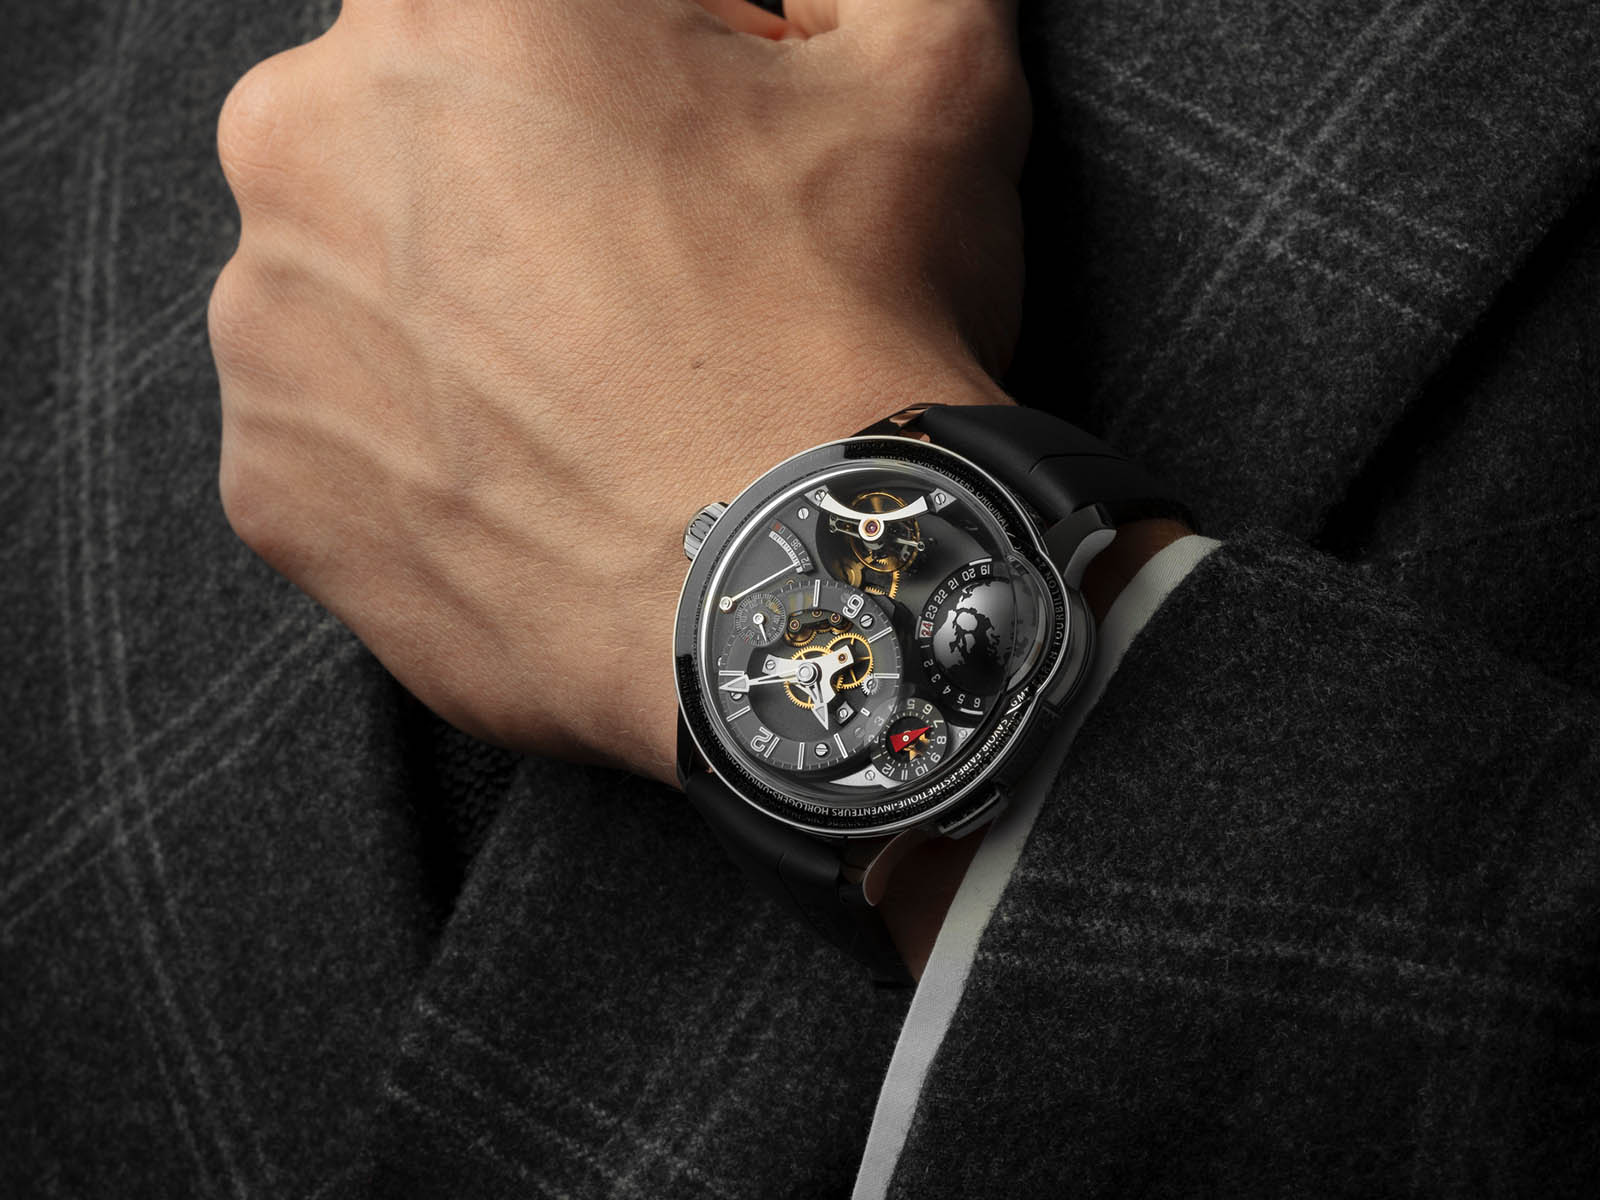 greubel-forsey-gmt-earth-final-edition-4.jpg